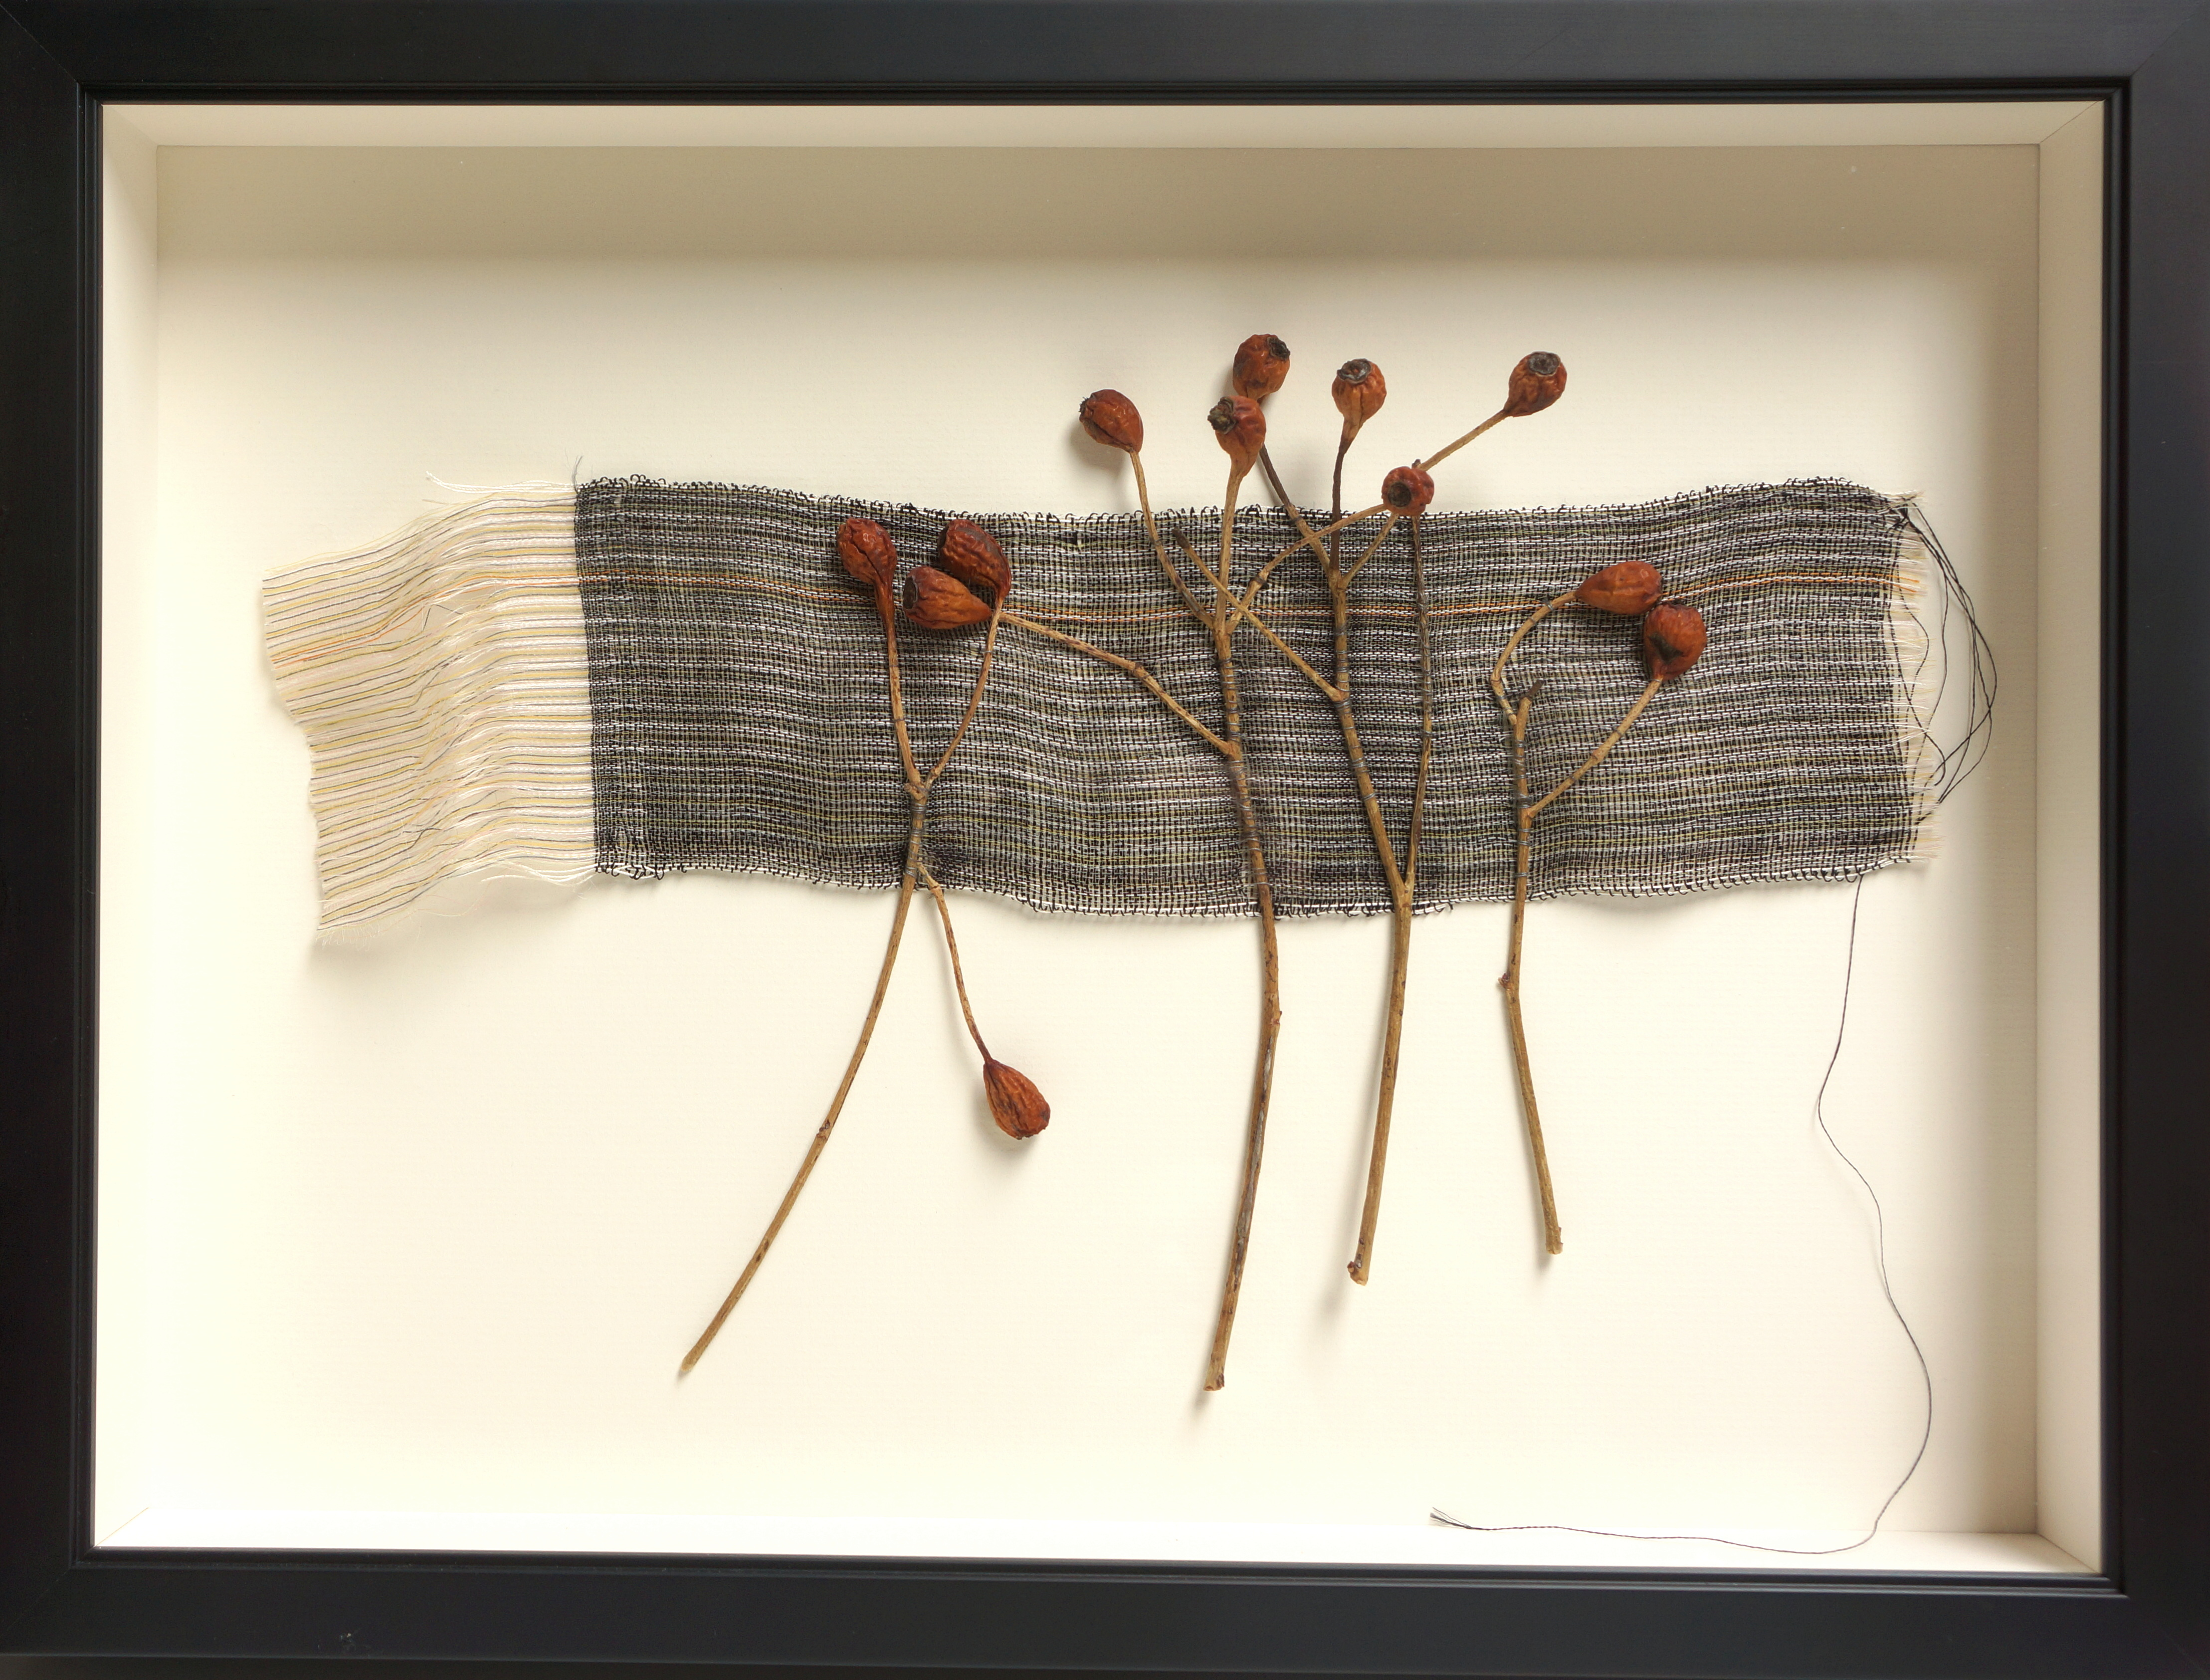 Weaving with Rose Hips #2 - Peggy Osterkamp > click to enlarge